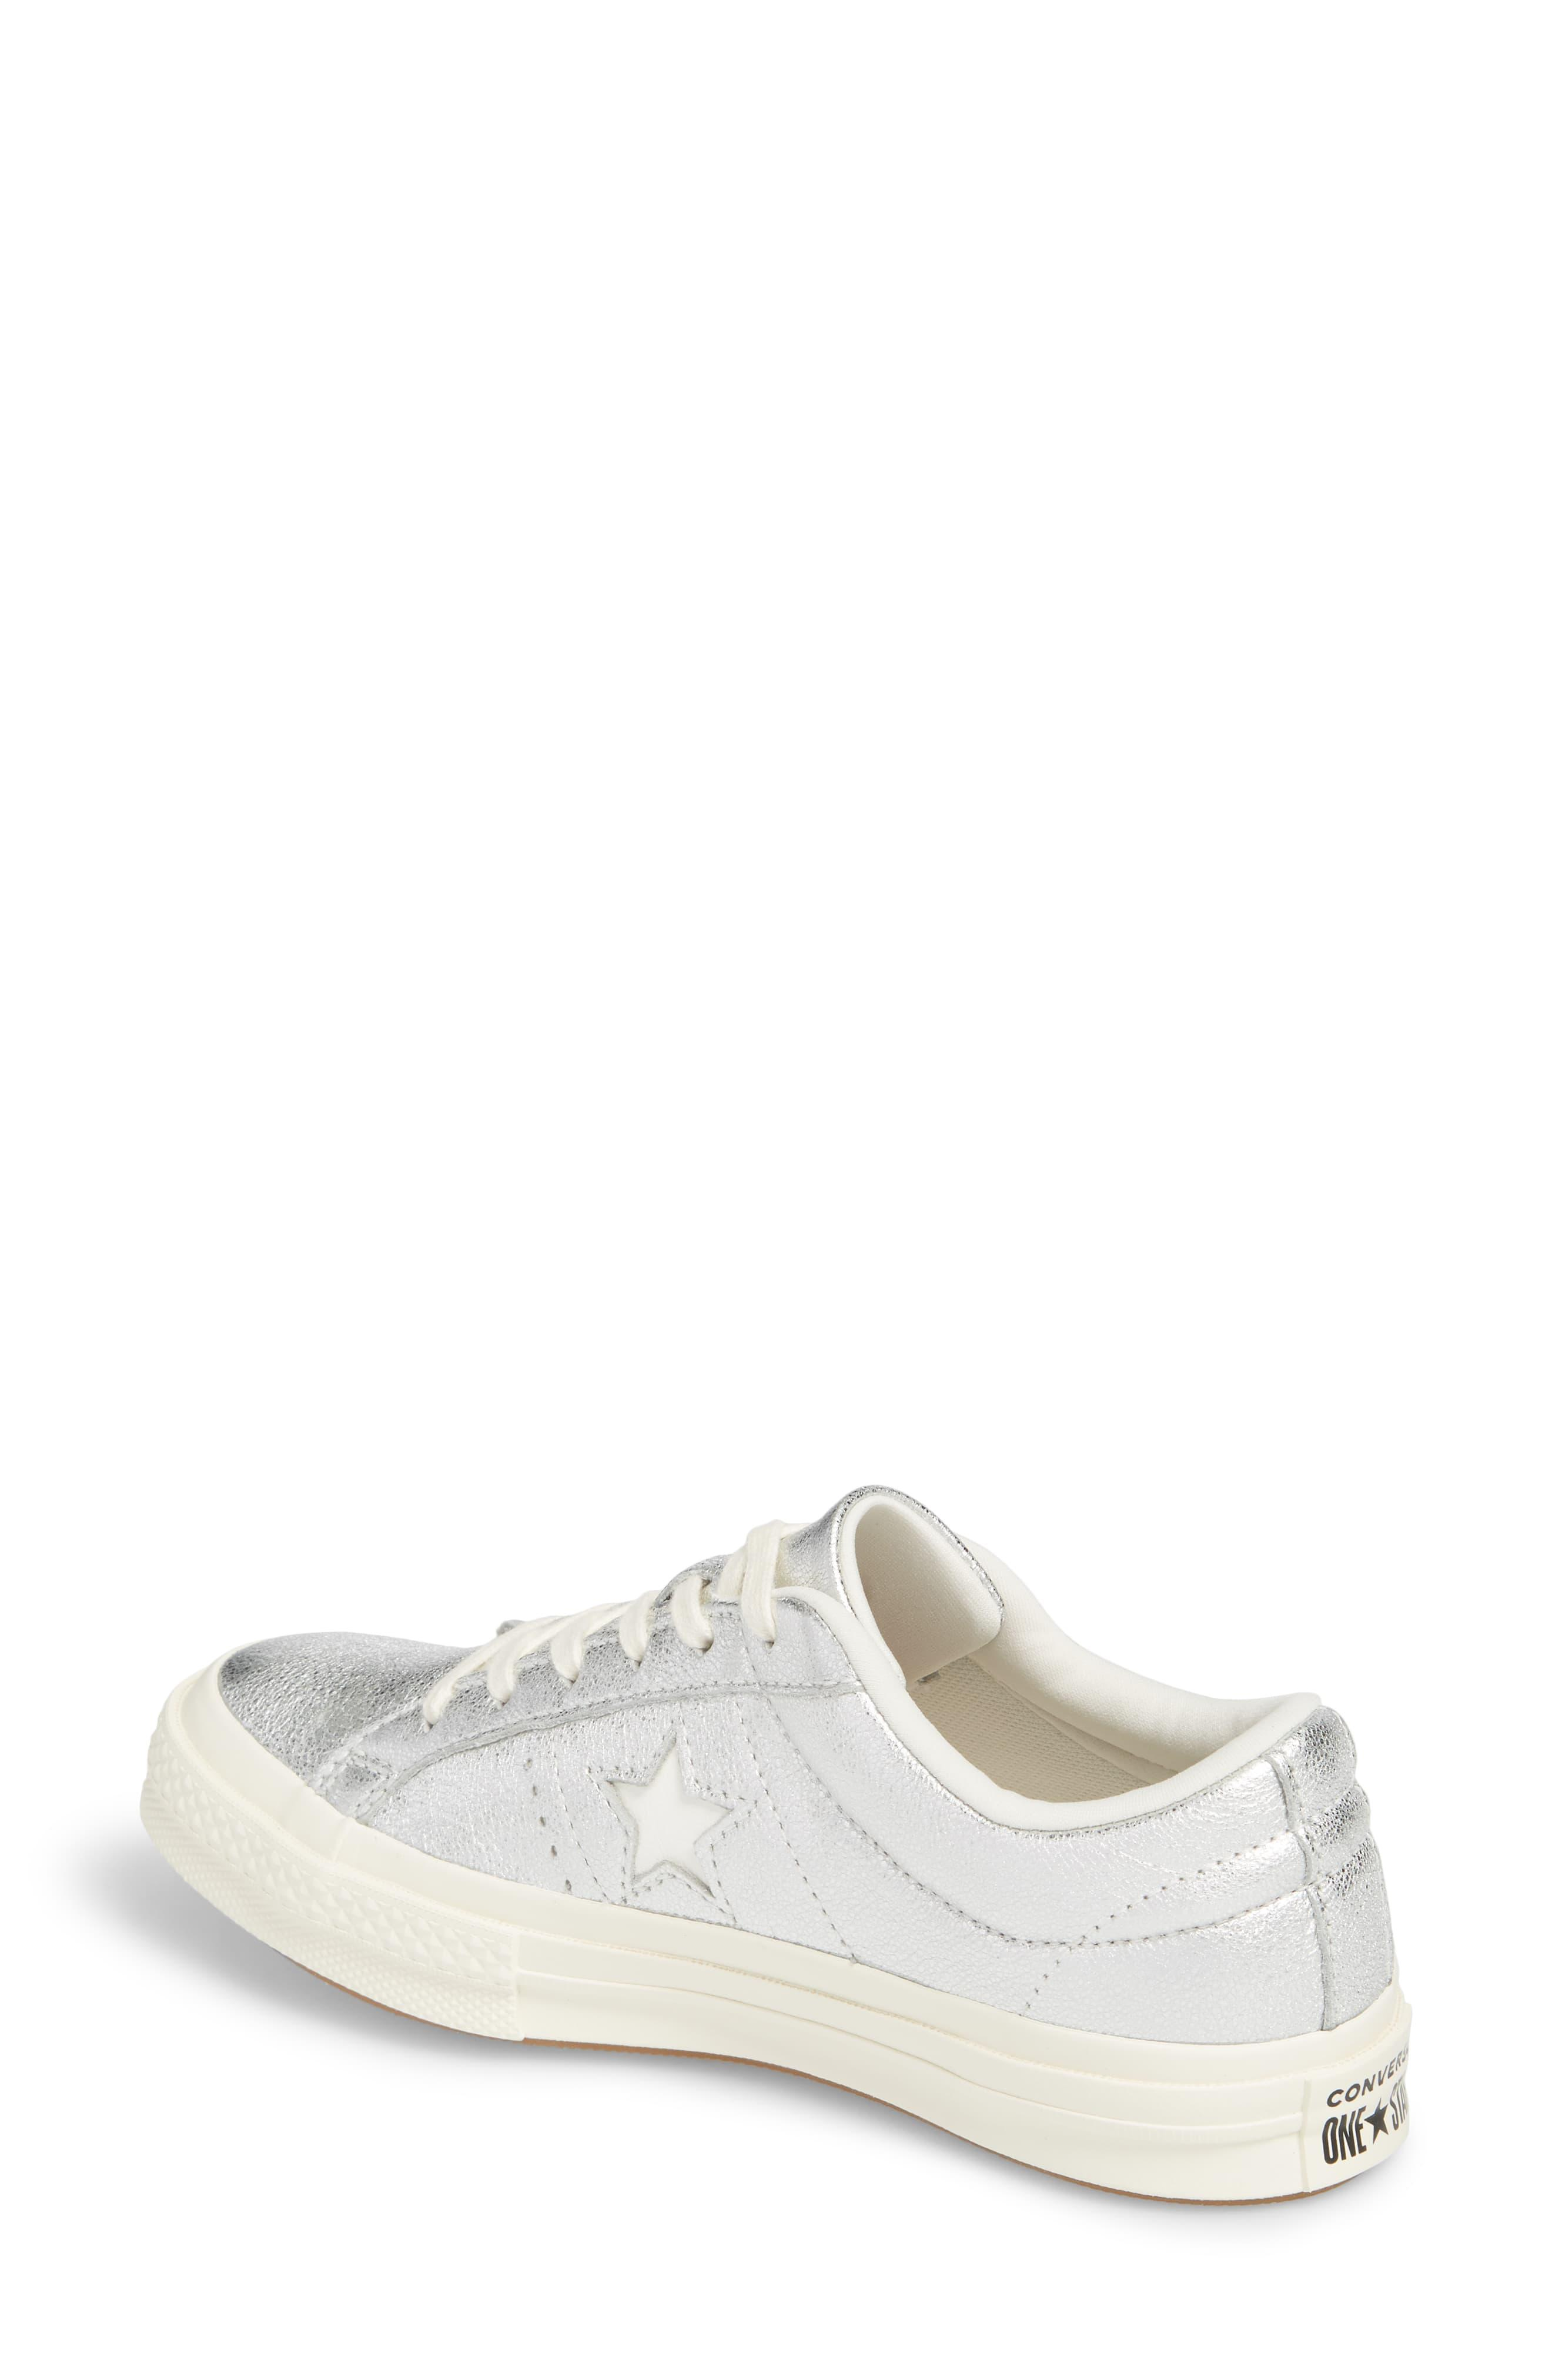 Converse One Star Heavy Metal Low Top